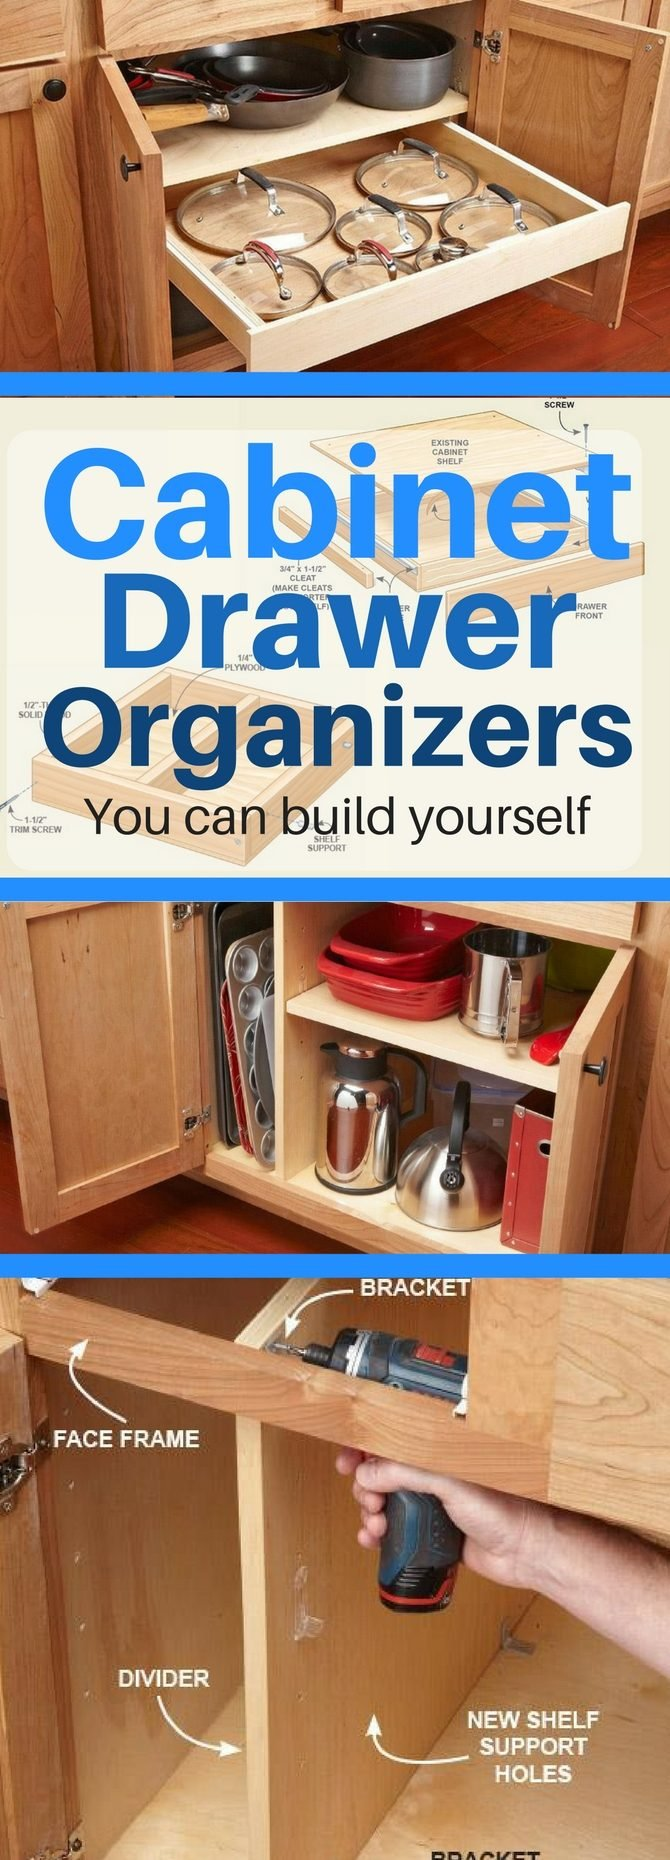 10 Kitchen Cabinet Tips: 10 Kitchen Cabinet & Drawer Organizers You Can Build